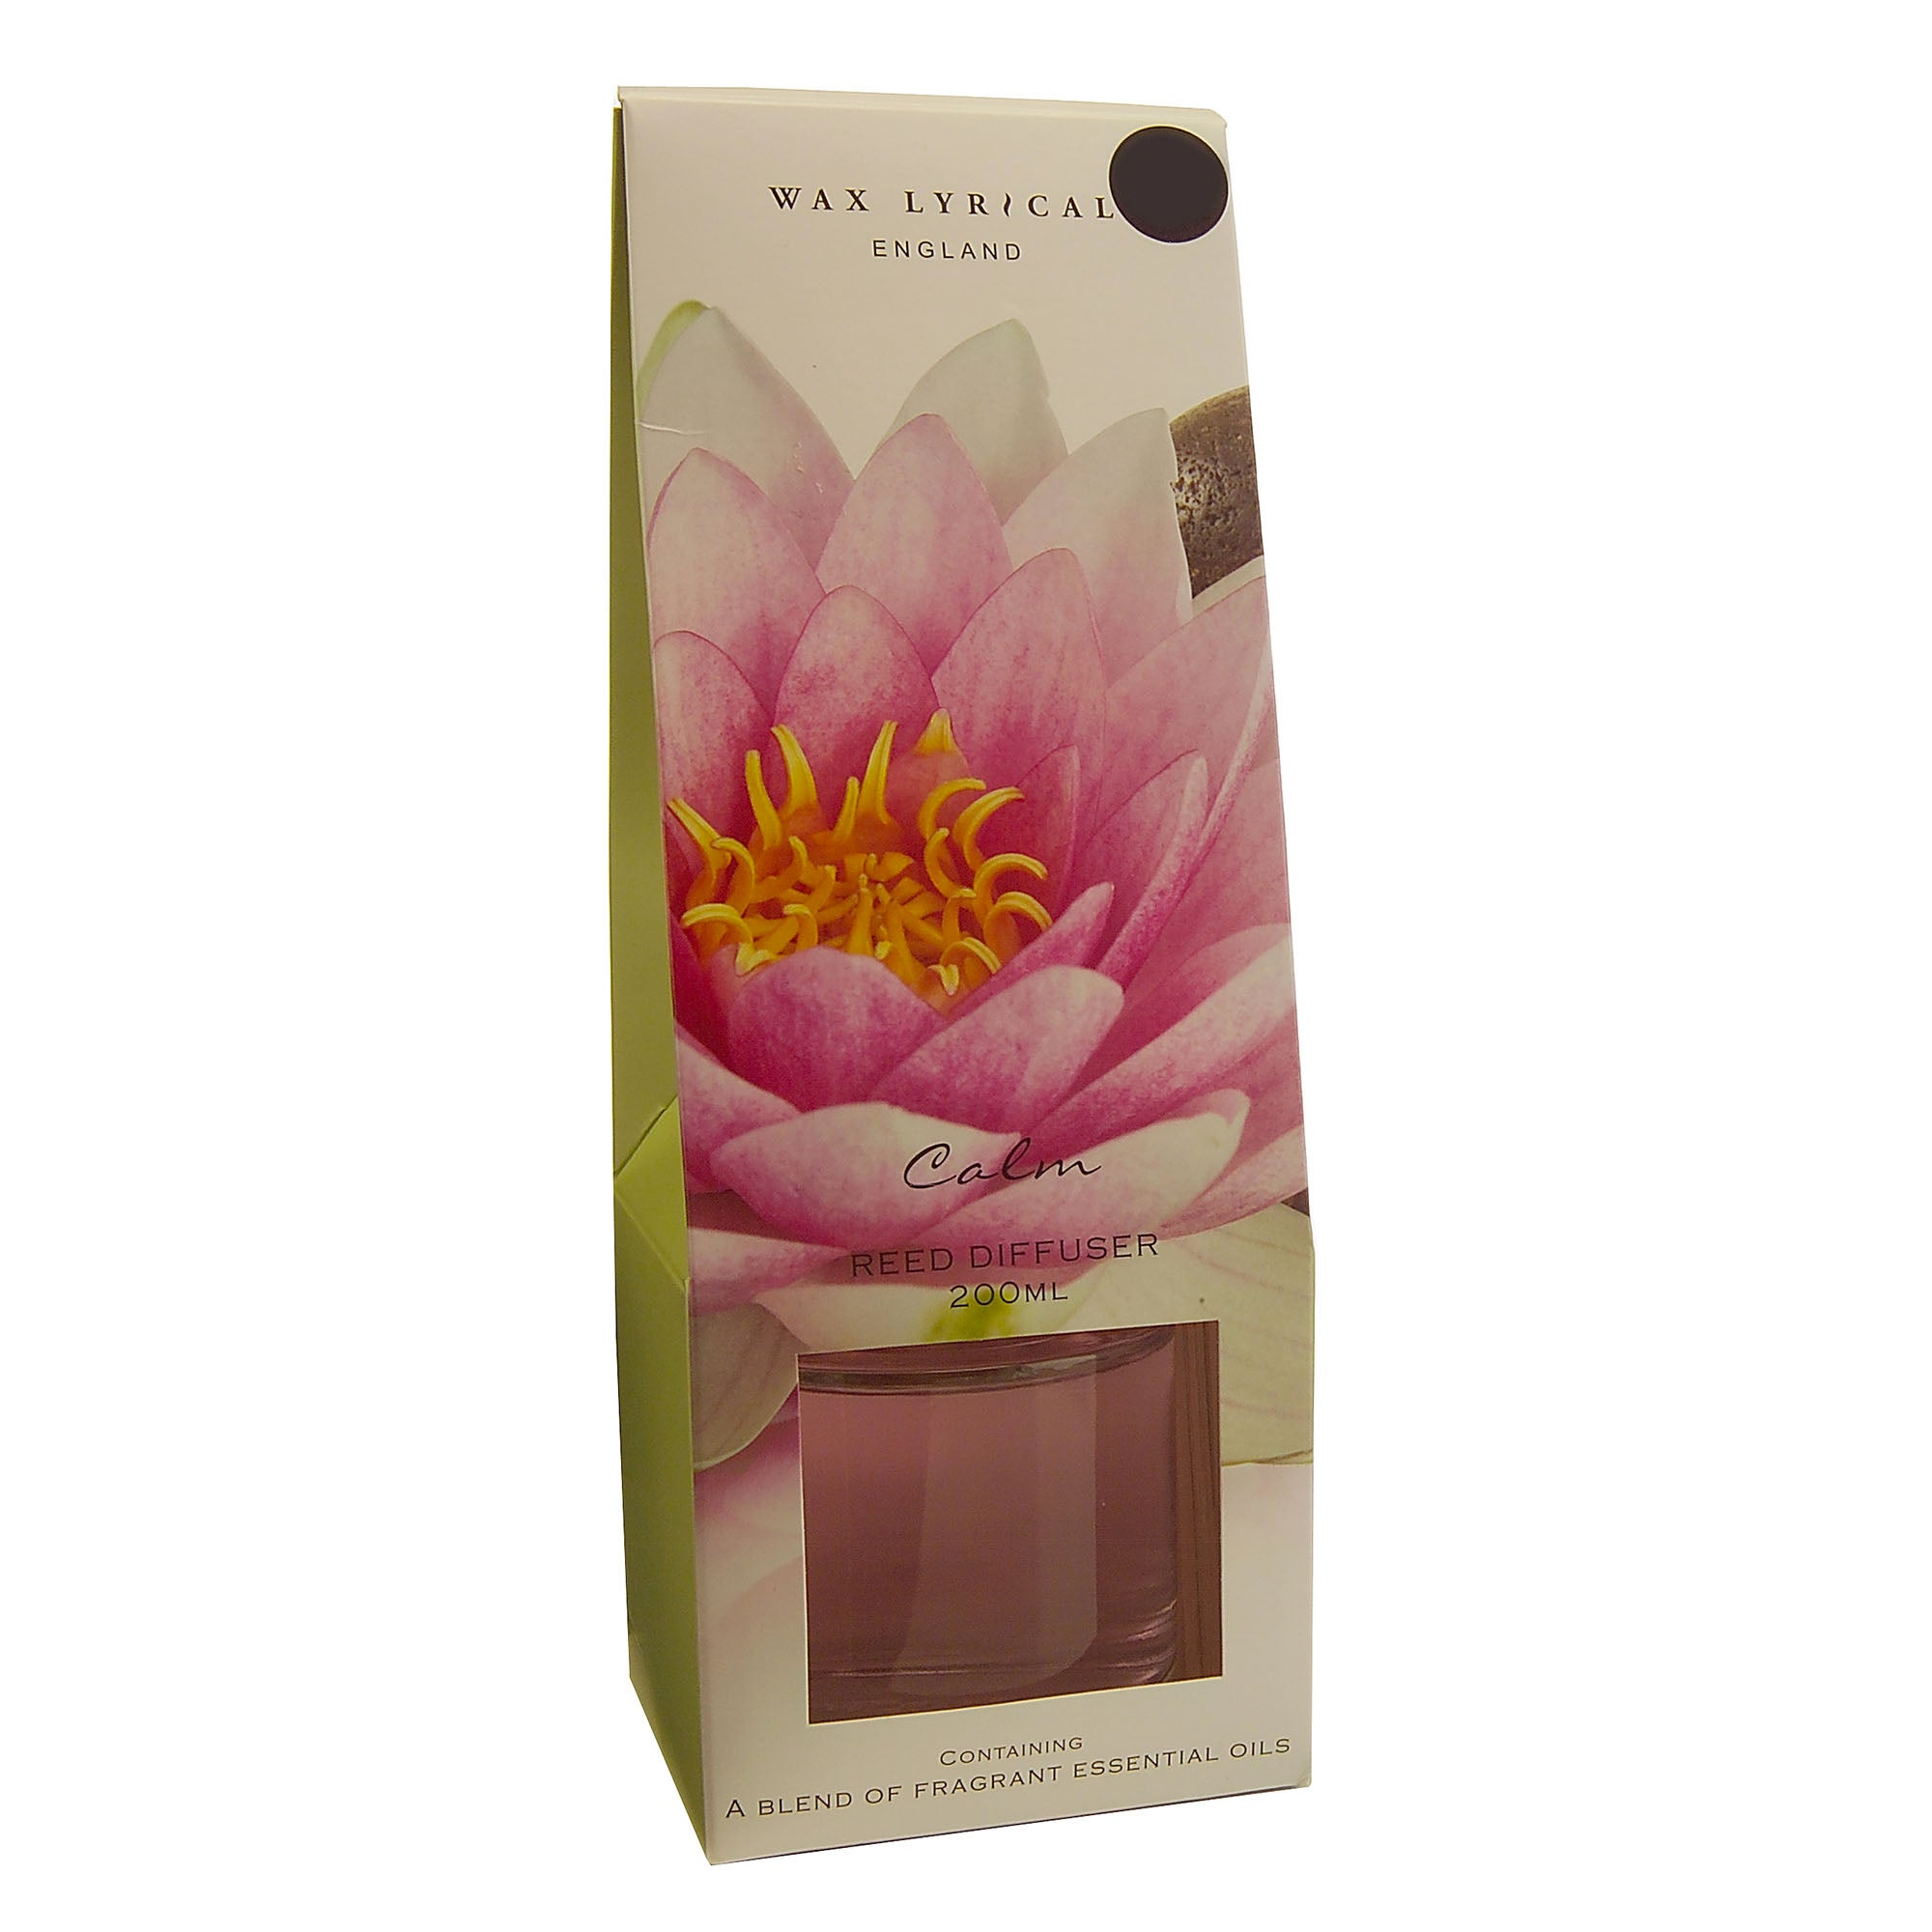 Wax Lyrical Calm 200ml Reed Diffuser